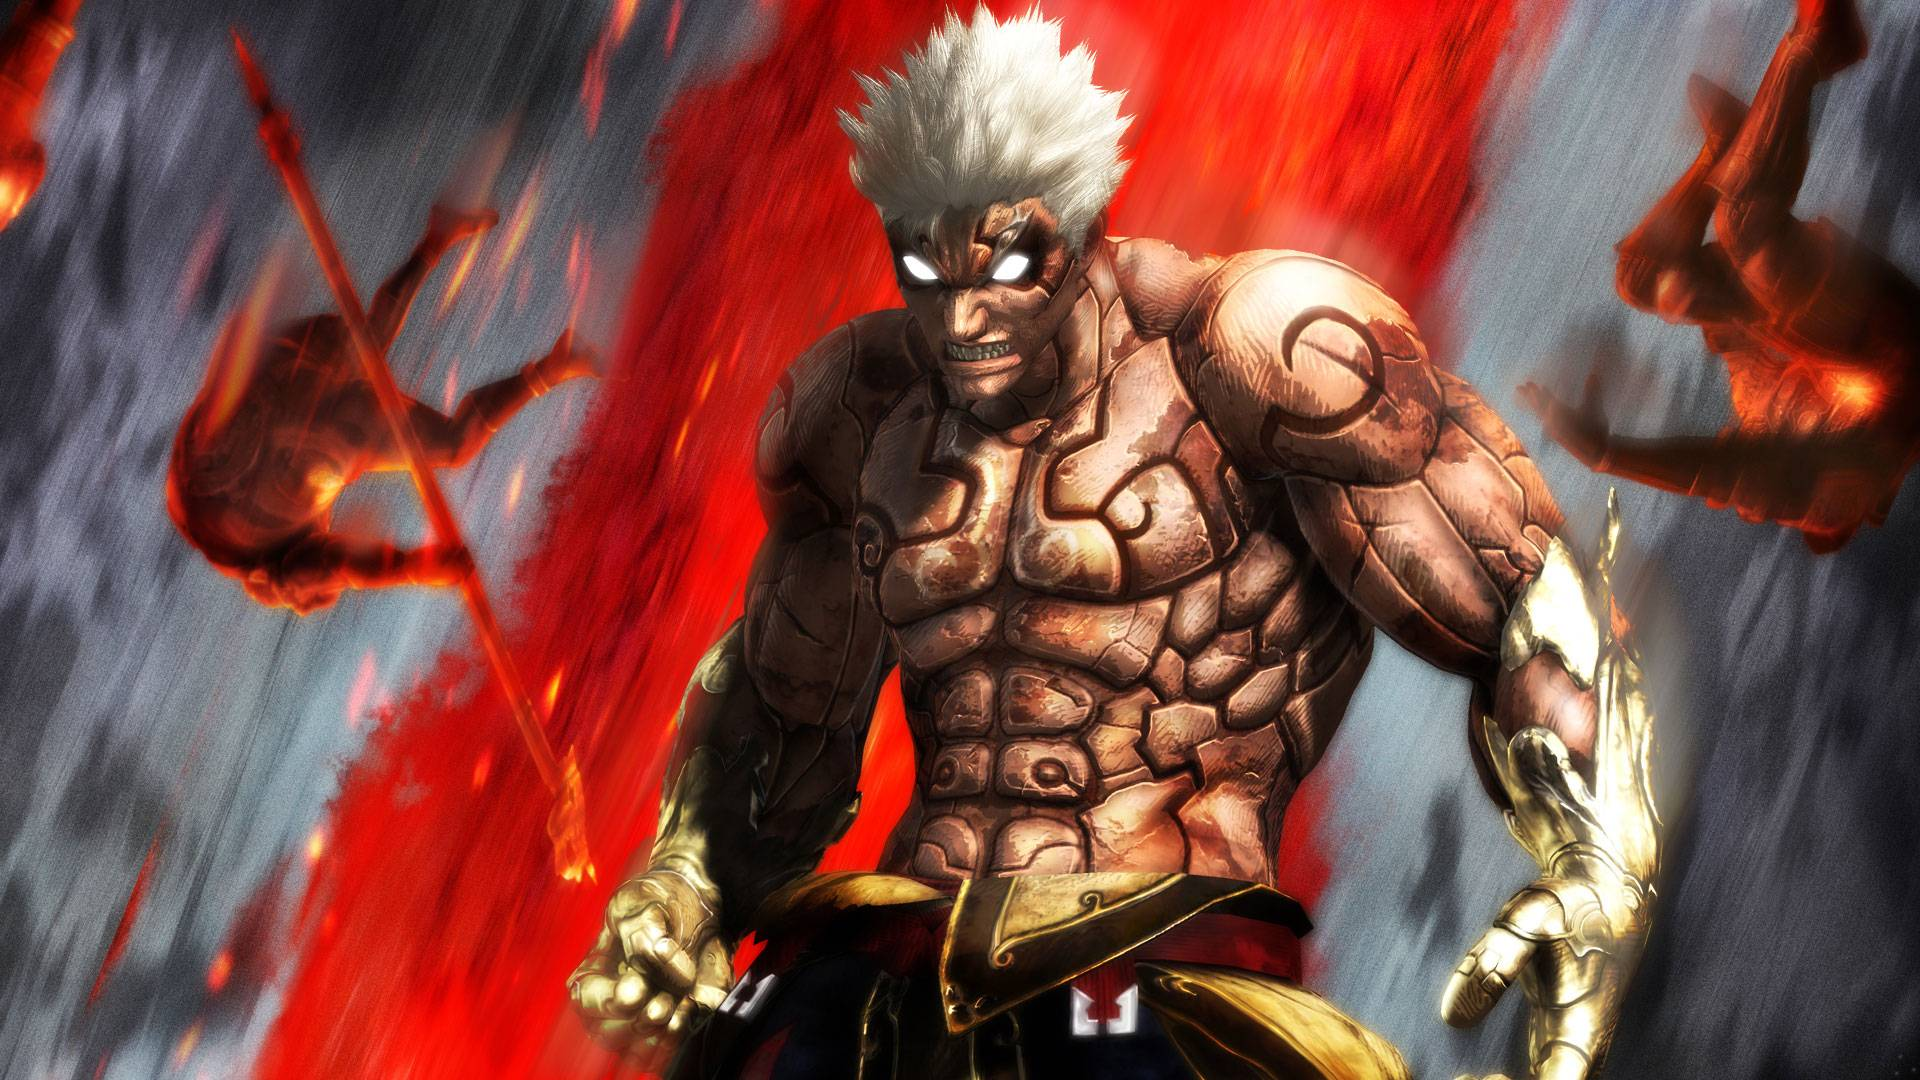 asuras_wrath_wallpaper